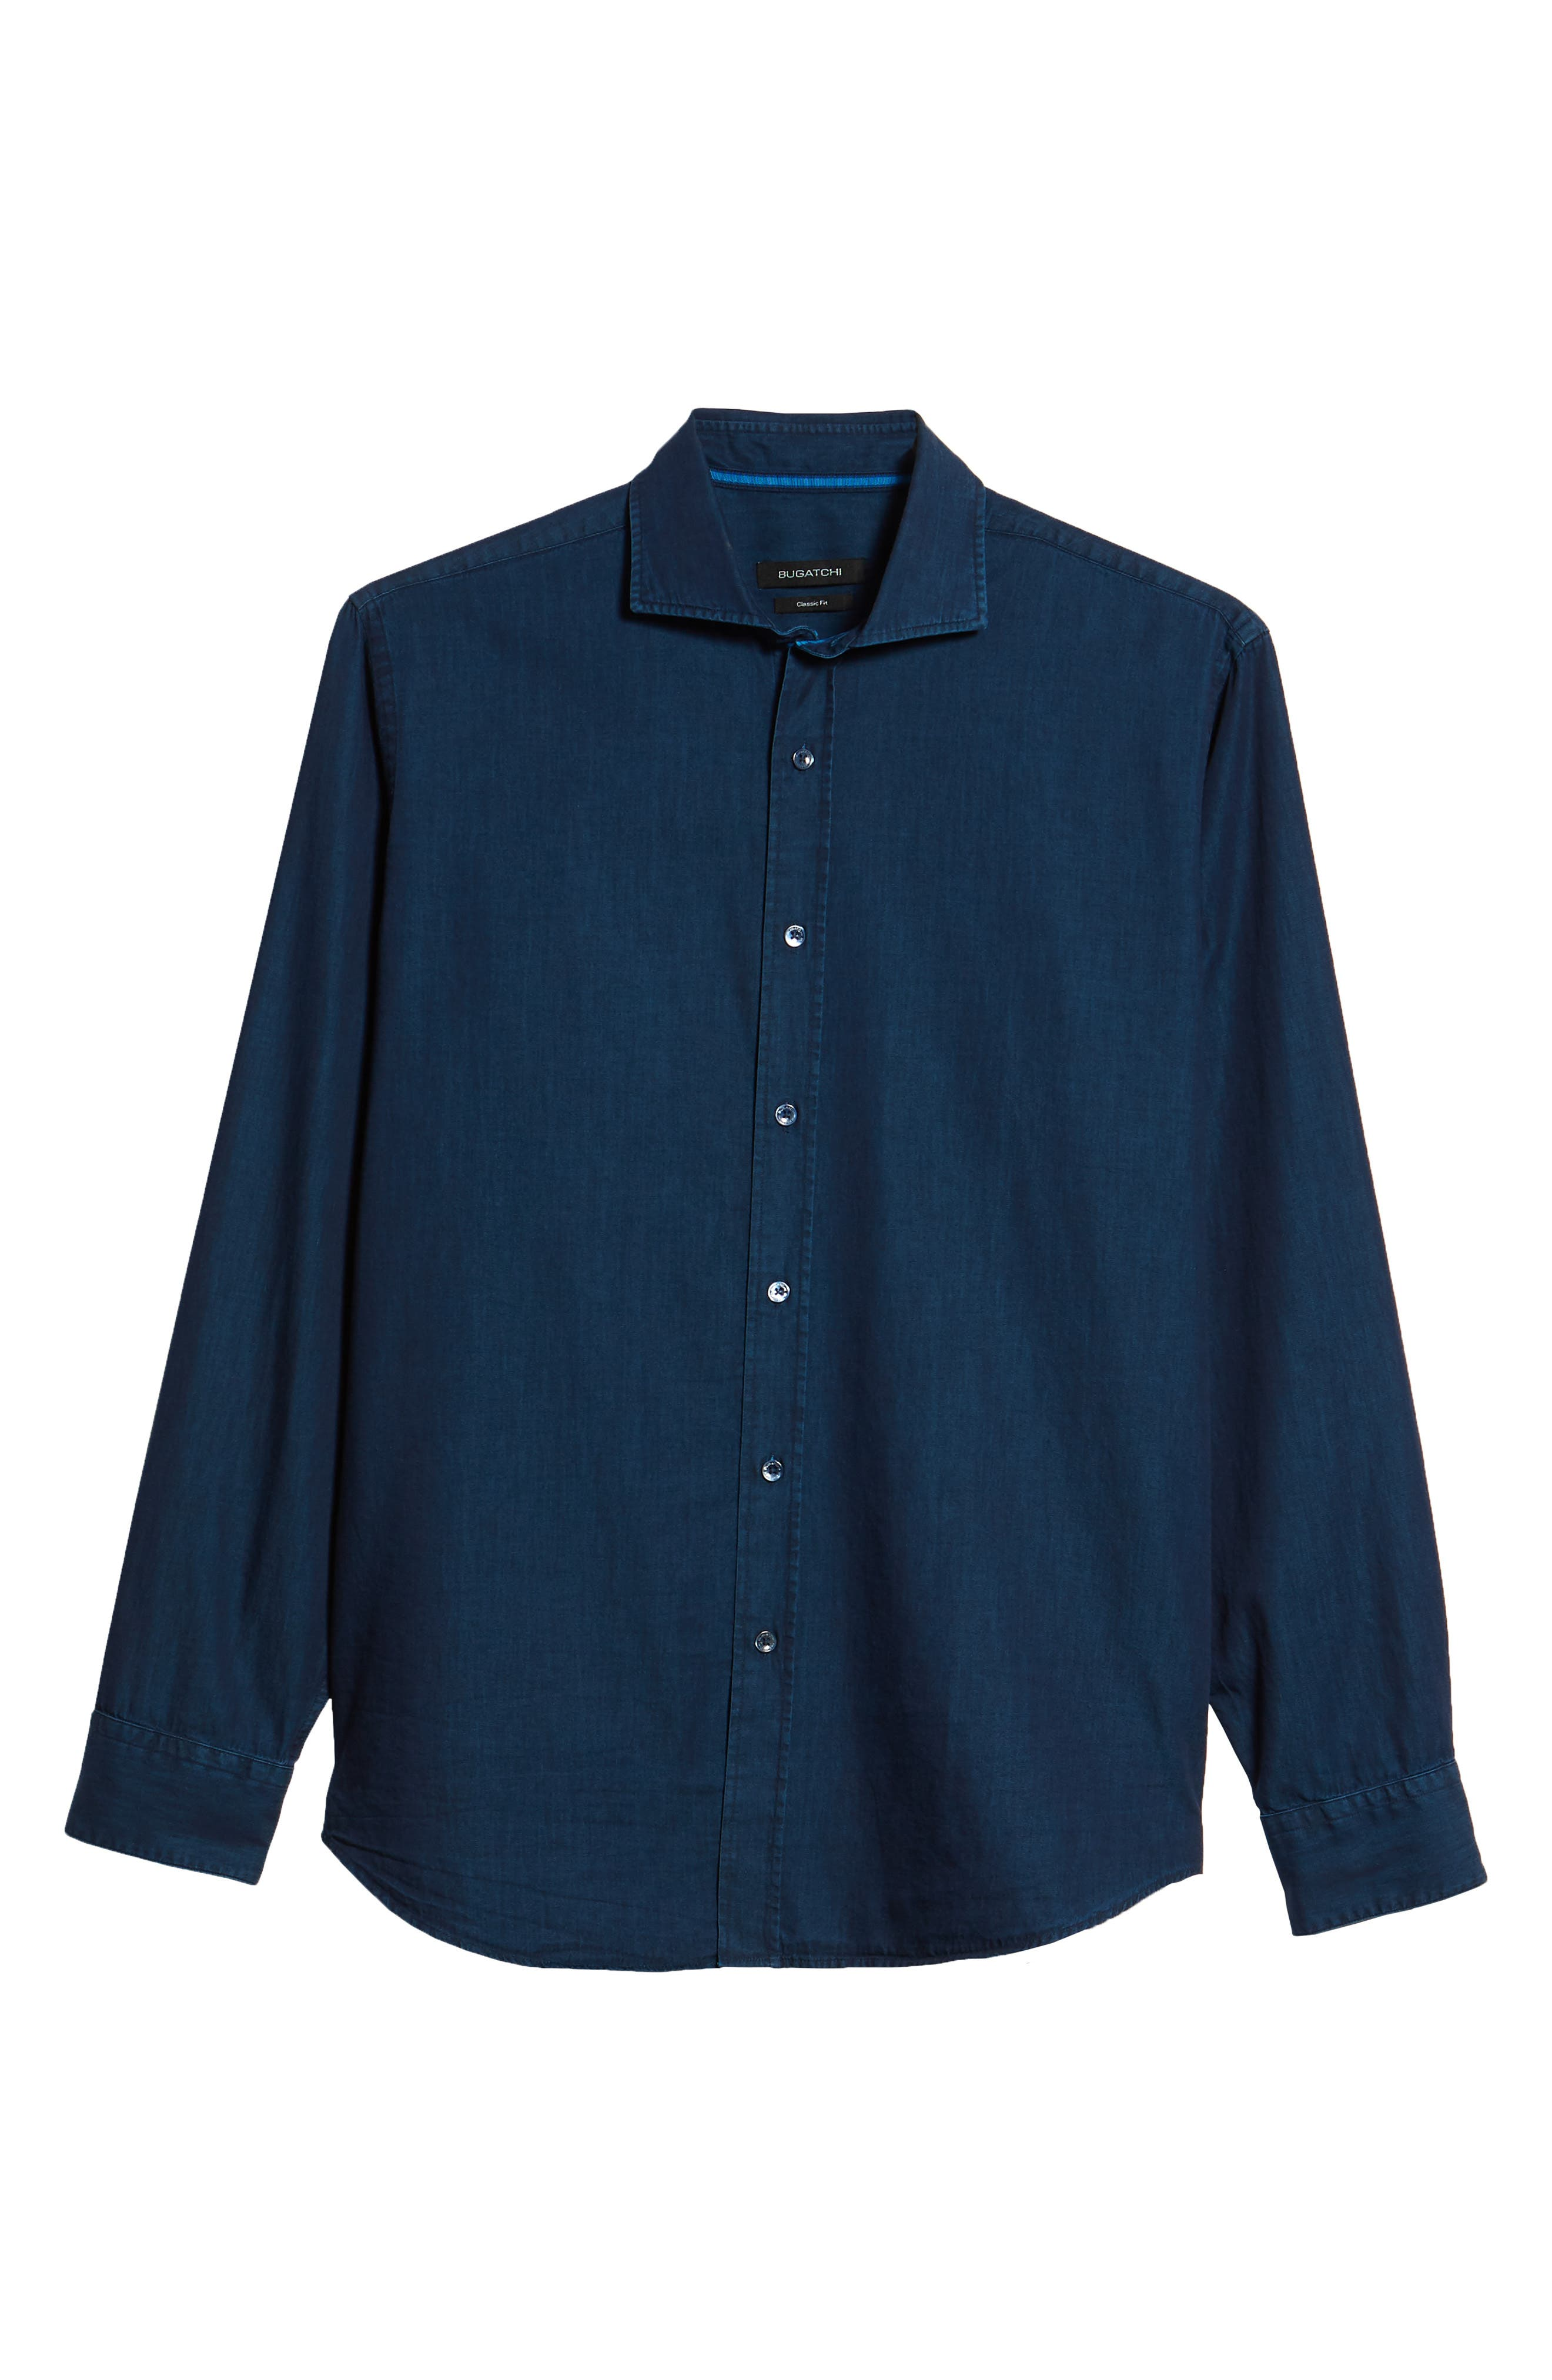 Classic Fit Indigo Sport Shirt,                             Alternate thumbnail 6, color,                             Navy